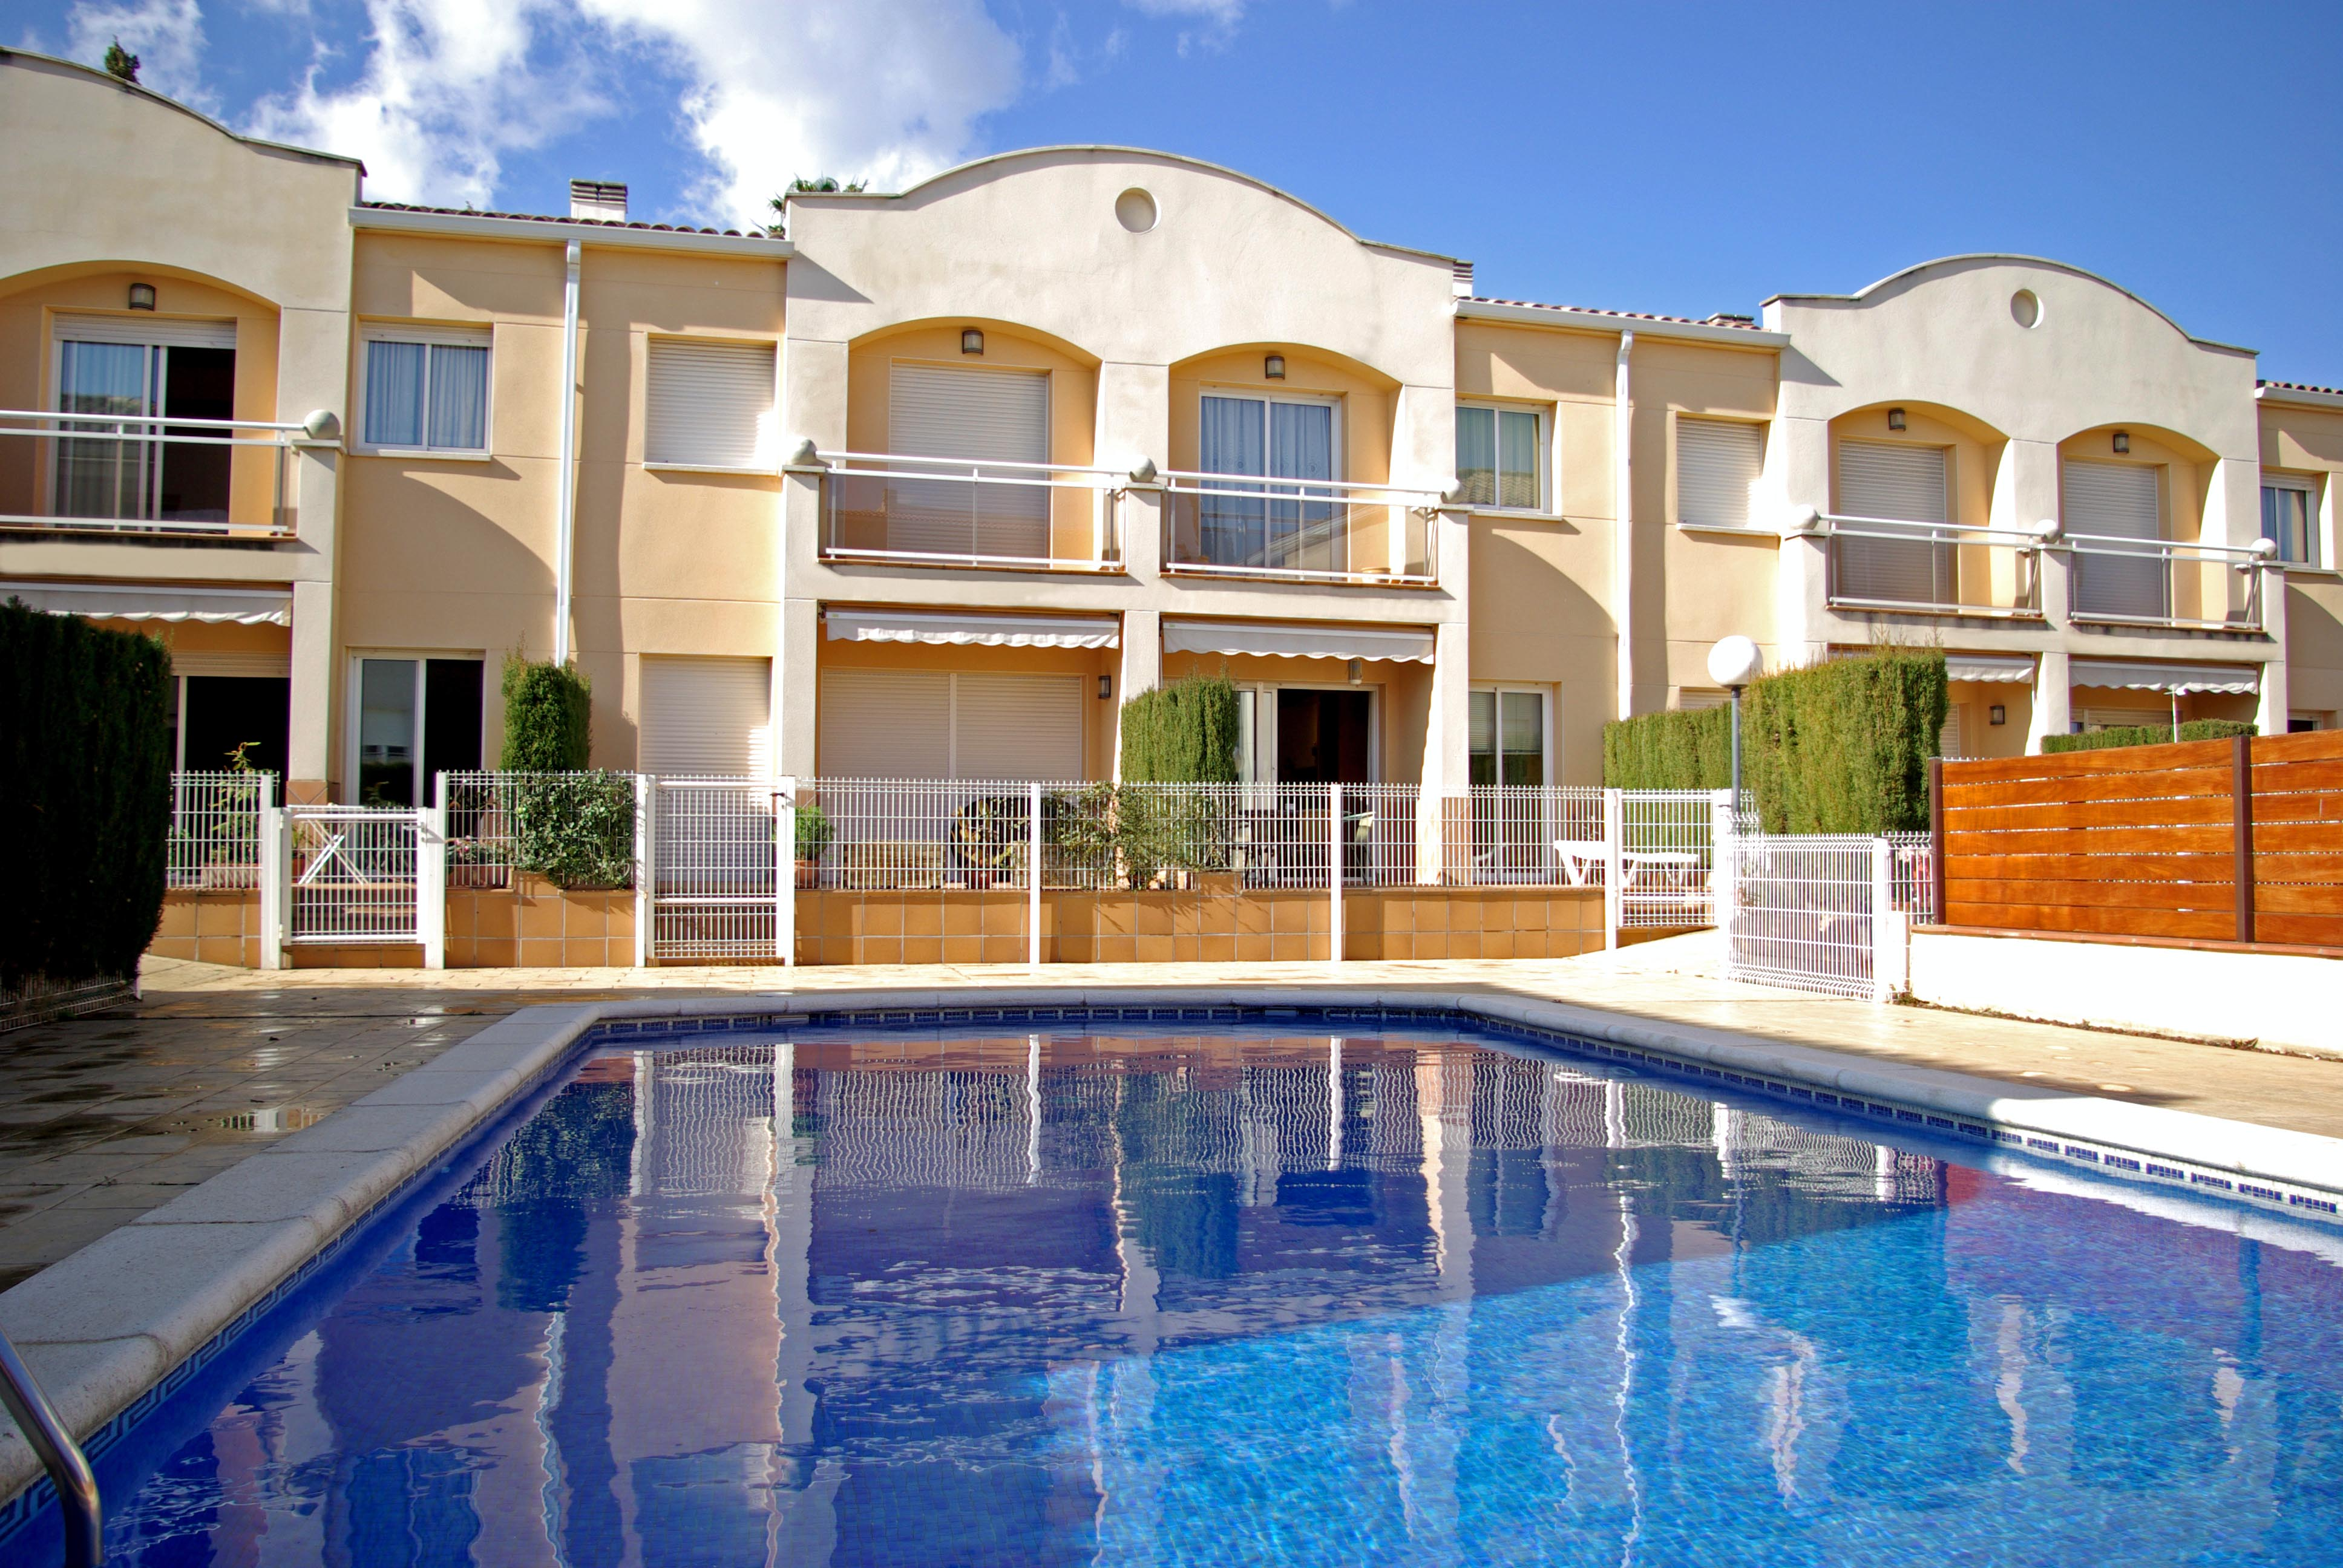 Single Family Home for Sale at Terraced house for sale few minutes away from the beach of S'Agaró S'Agaro, Costa Brava, 17248 Spain